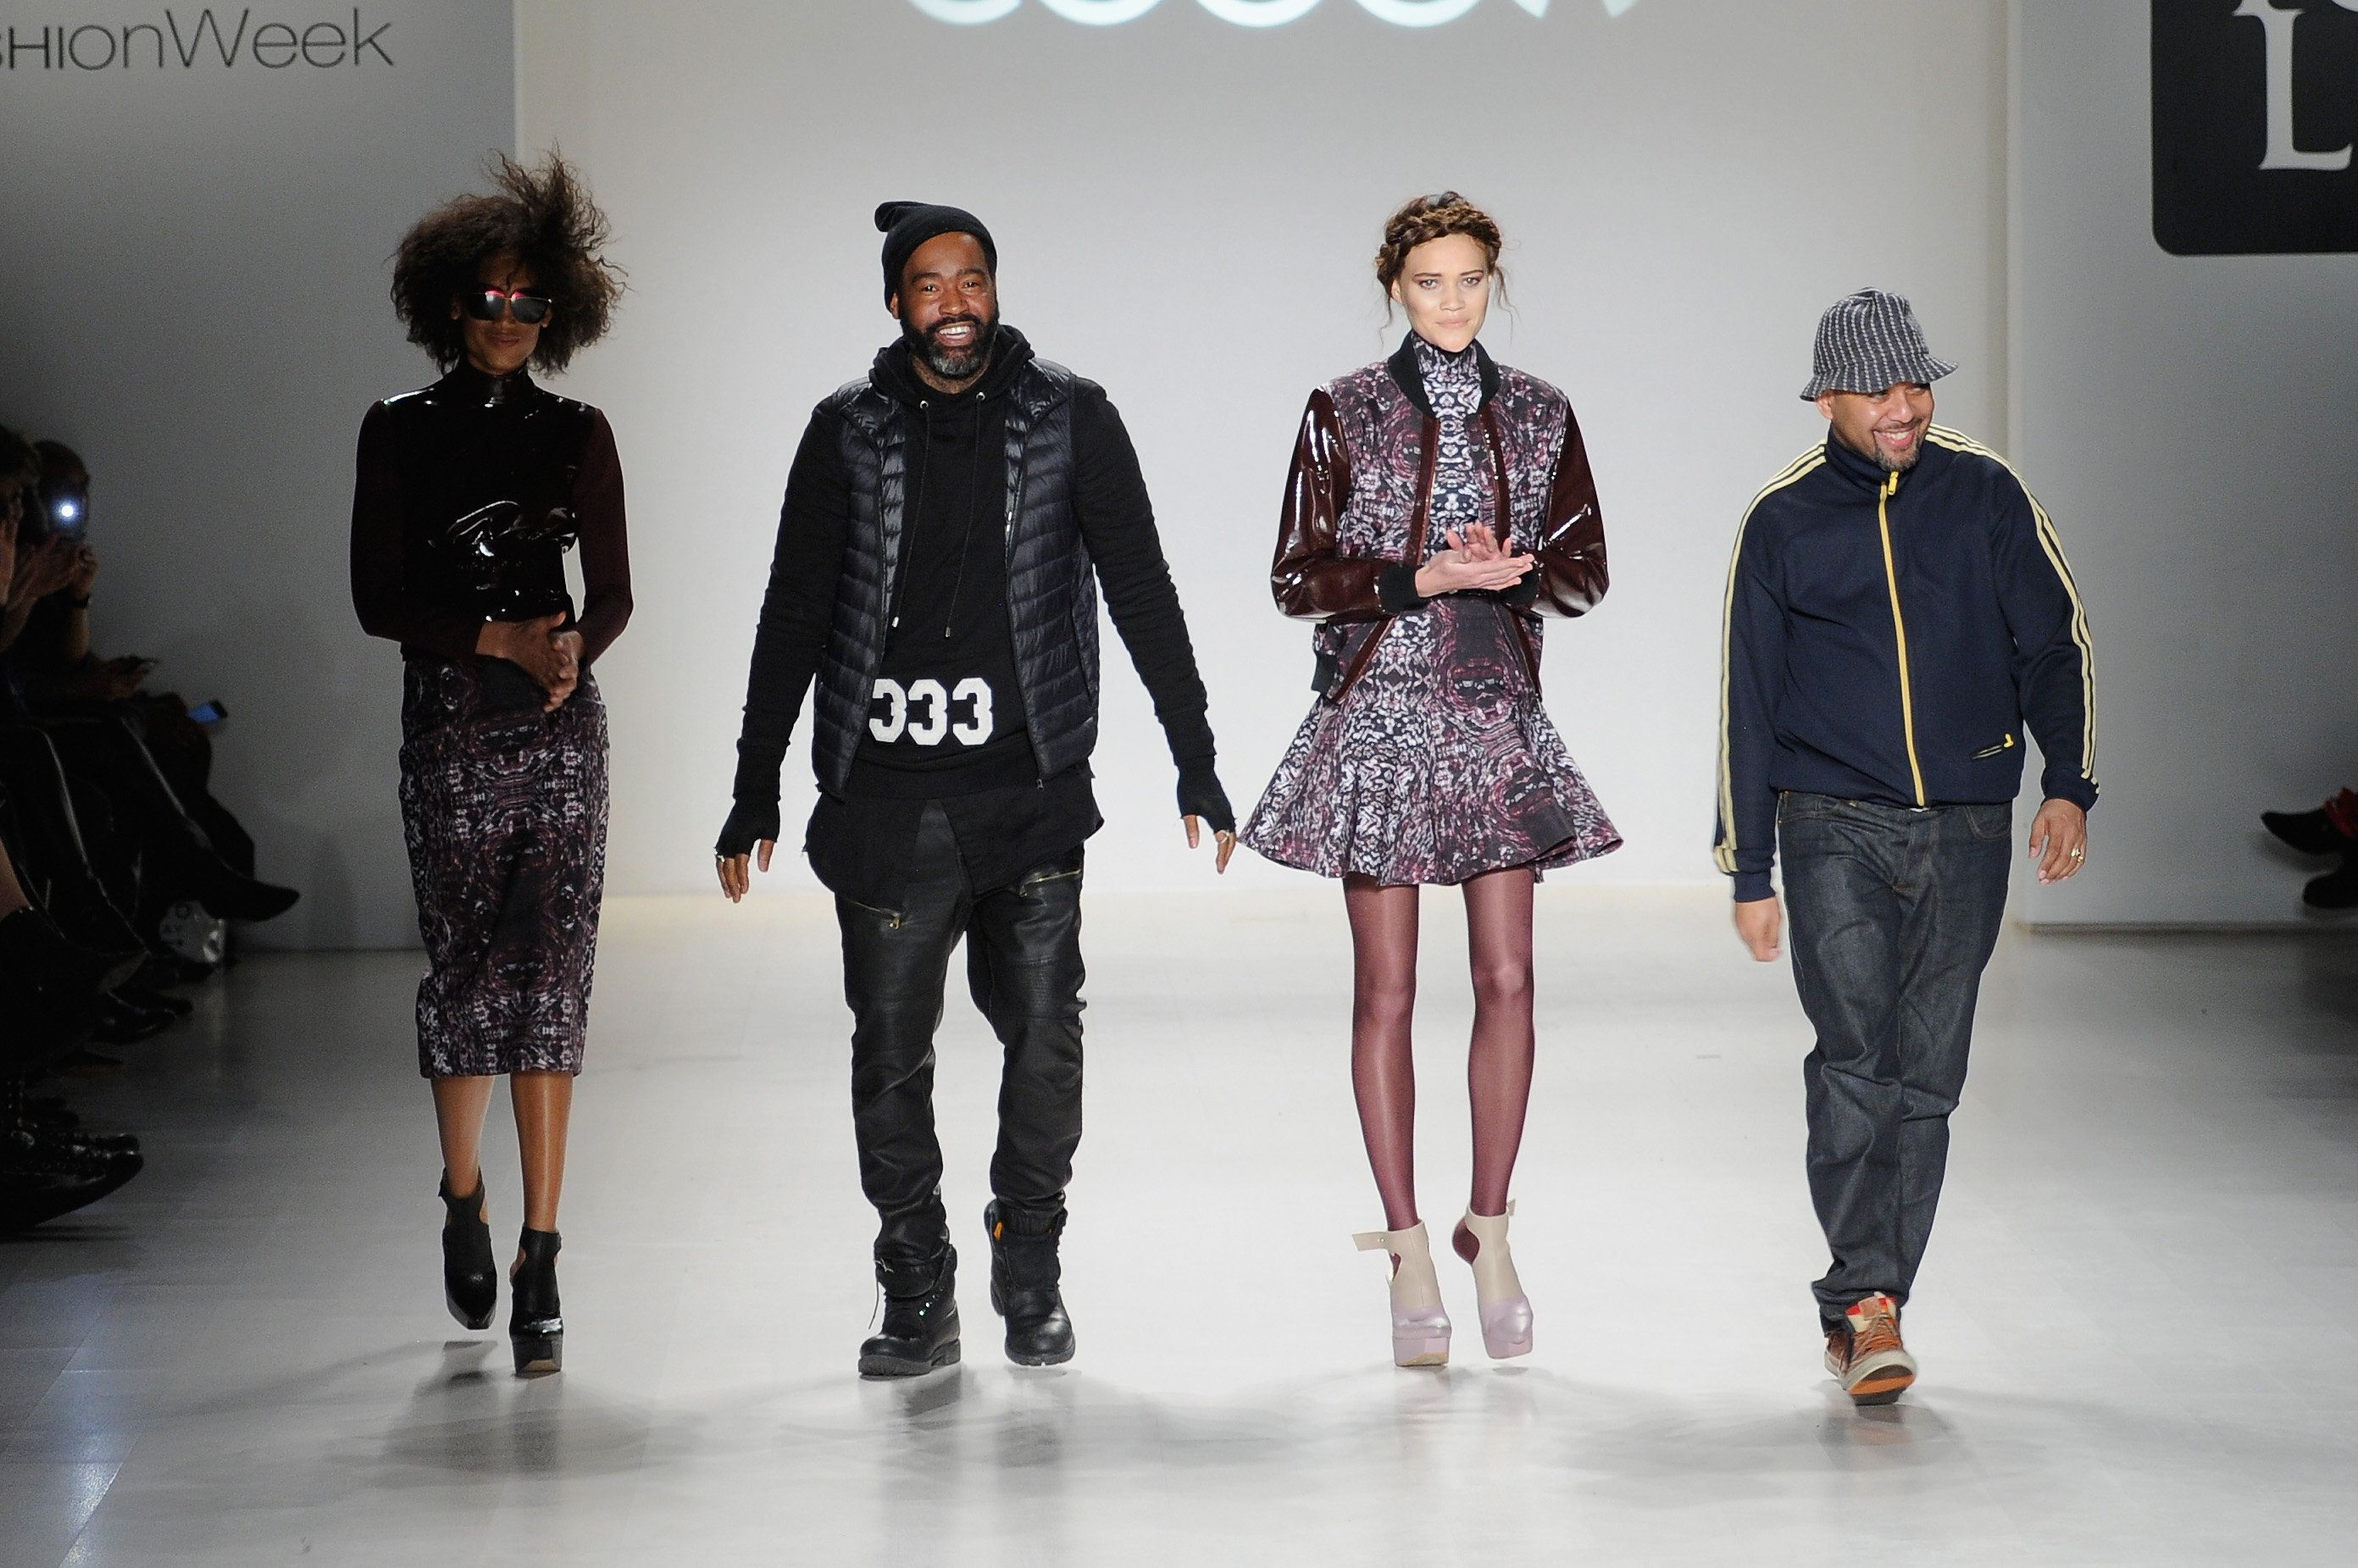 NEW YORK, NY - FEBRUARY 19:  Designer Emilio Sosa walks the runway with a model in a design by Esosa at the New York Life fashion show during Mercedes-Benz Fashion Week Fall 2015 at The Salon at Lincoln Center on February 19, 2015 in New York City.  (Photo by Arun Nevader/Getty Images for Mercedes-Benz Fashion Week Fall )